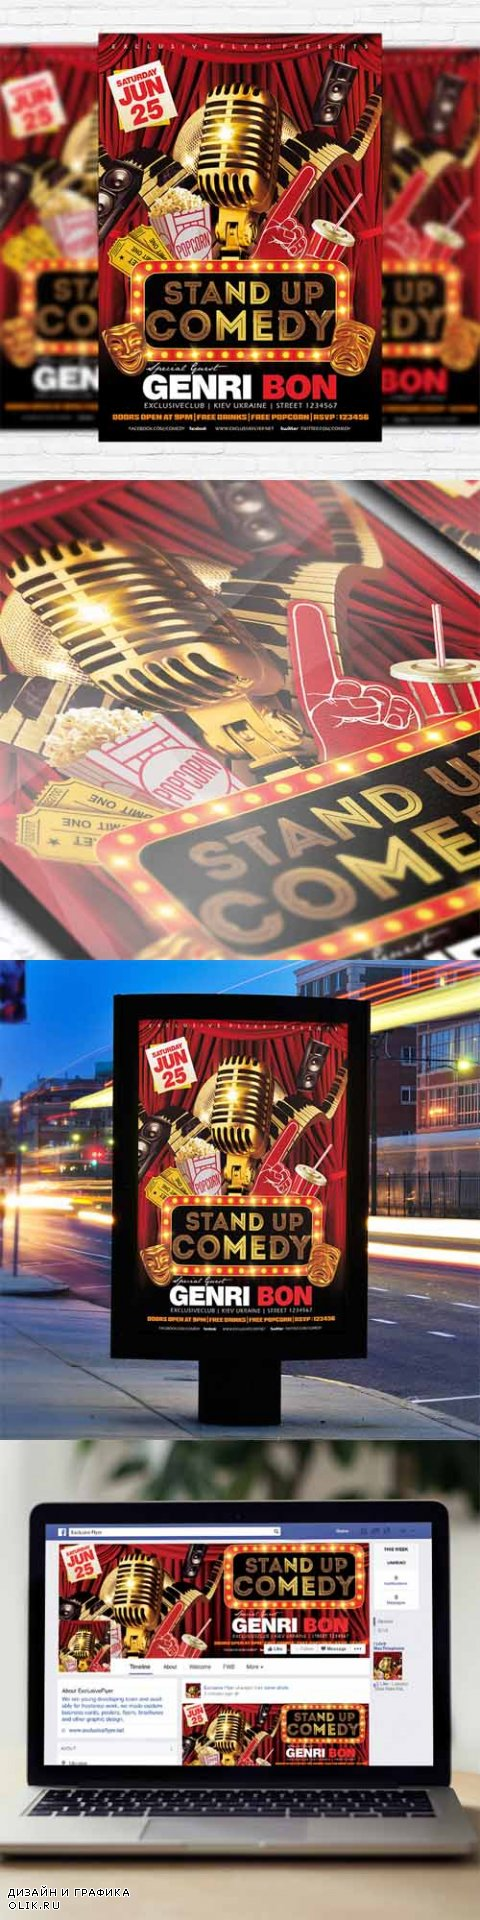 Flyer Template - Stand Up Comedy Vol.2 + Facebook Cover